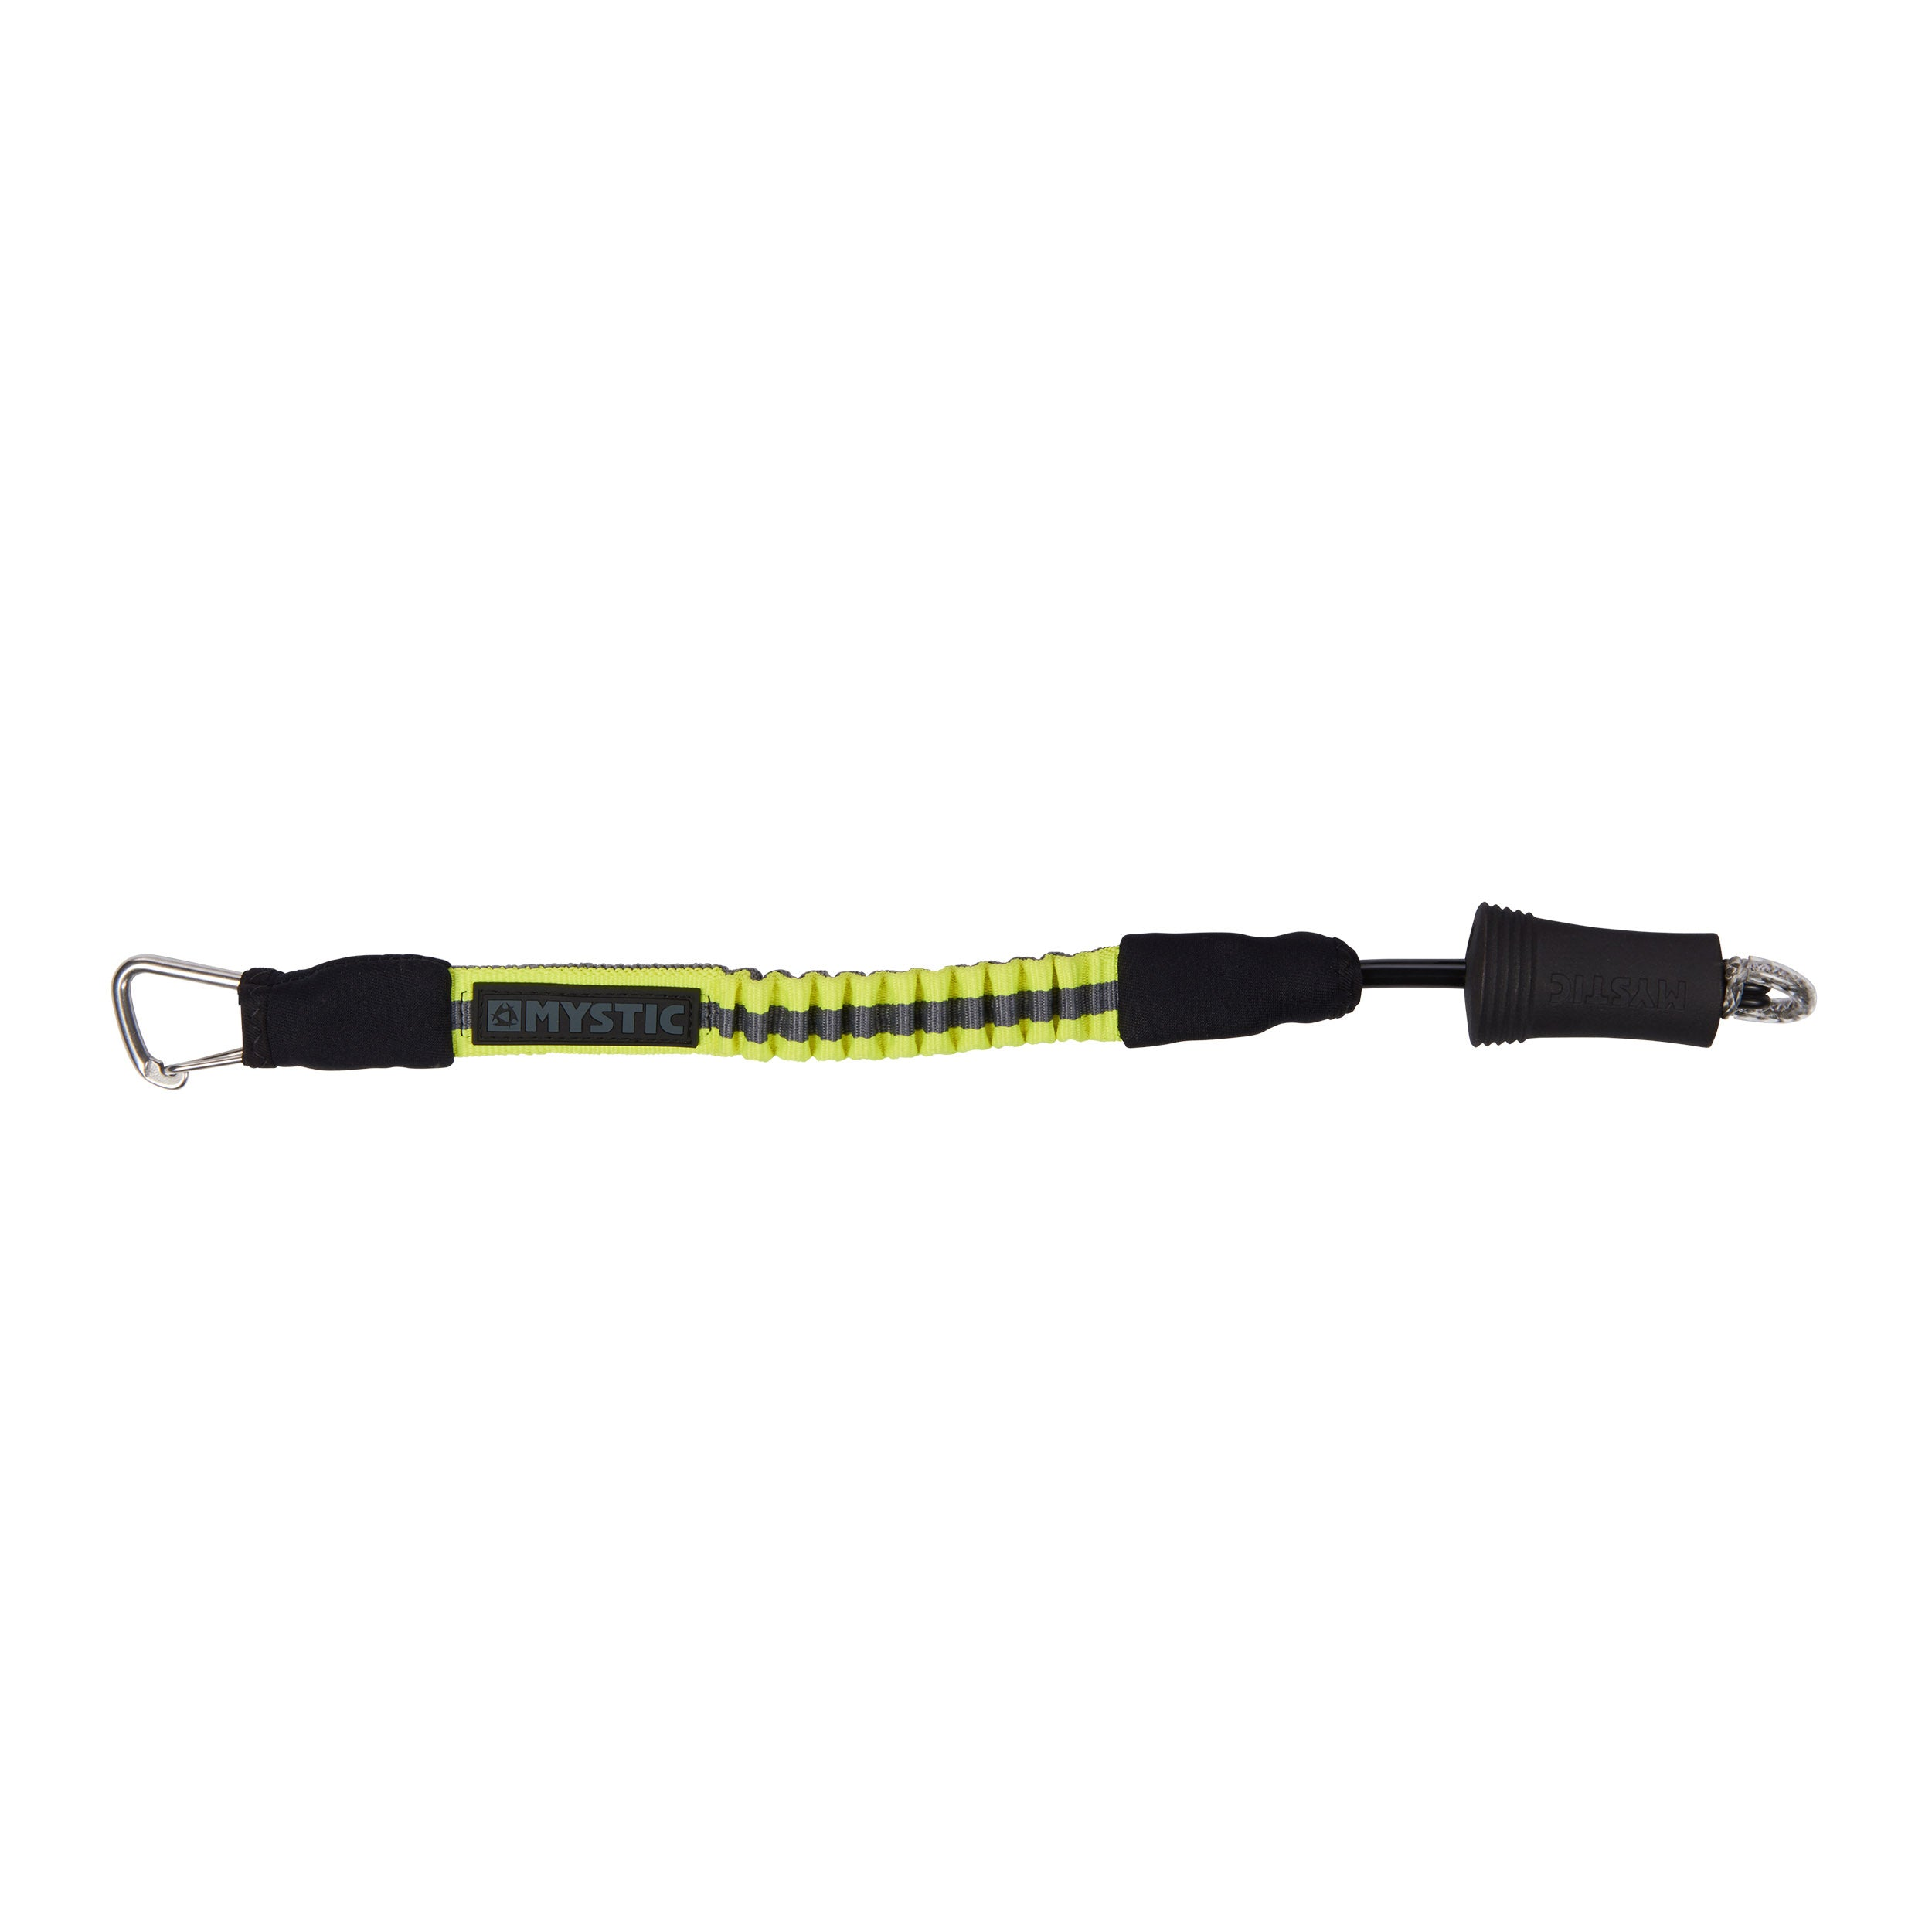 Mystic Kite Safety Leash - Short - Lime